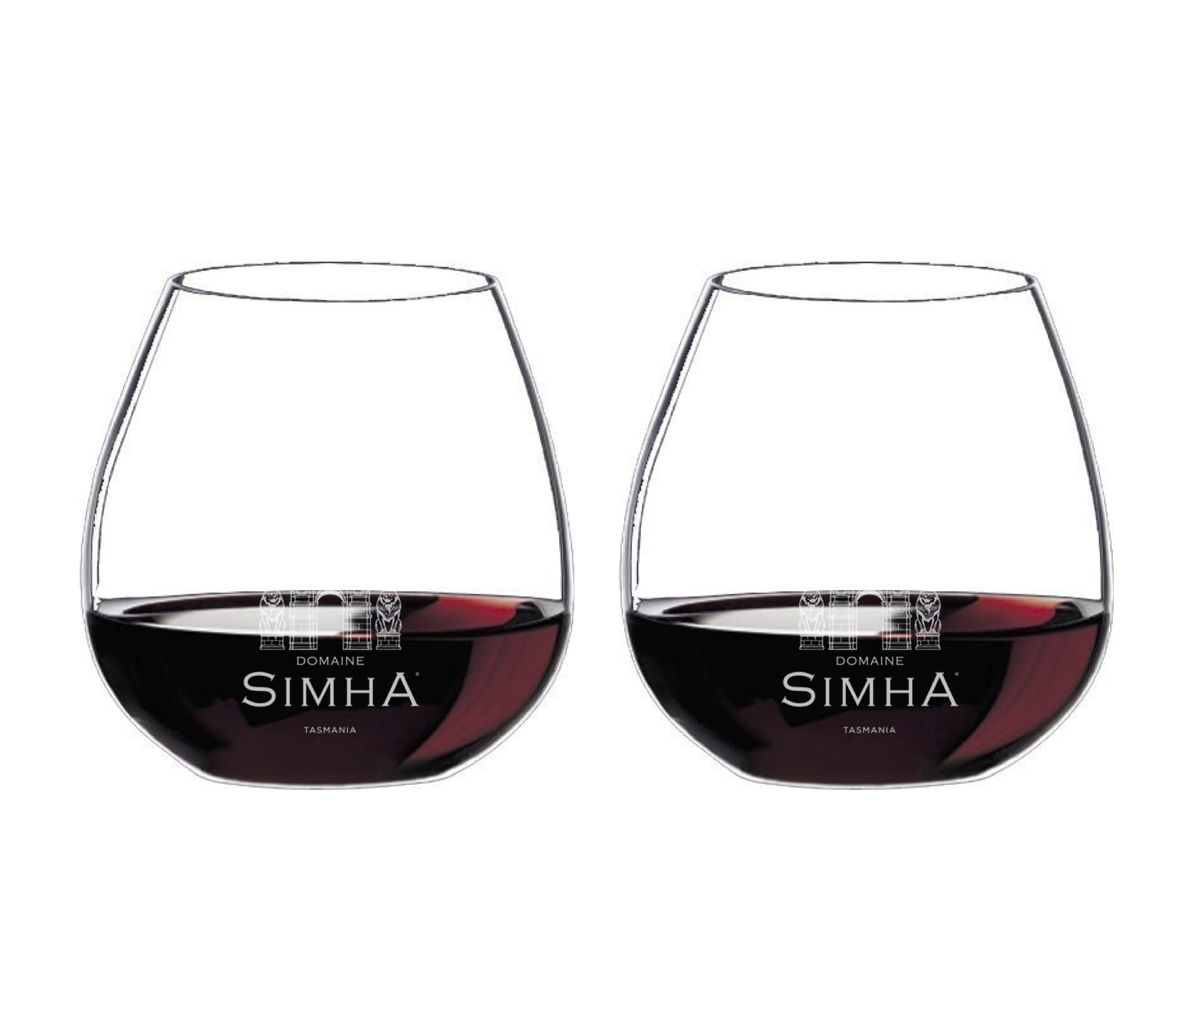 DOMAINE SIMHA WINE GLASS (2) - product images  of